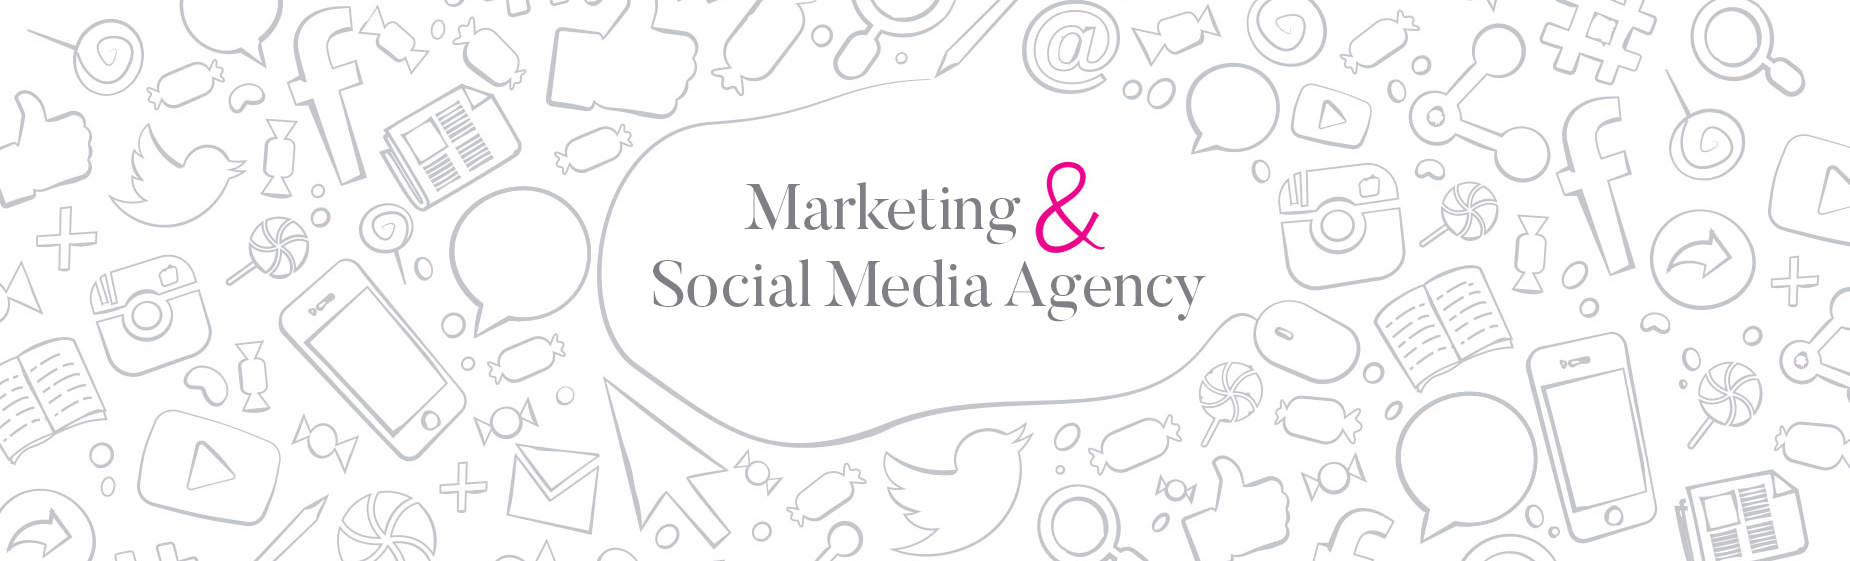 Marketing and Social Media Agency